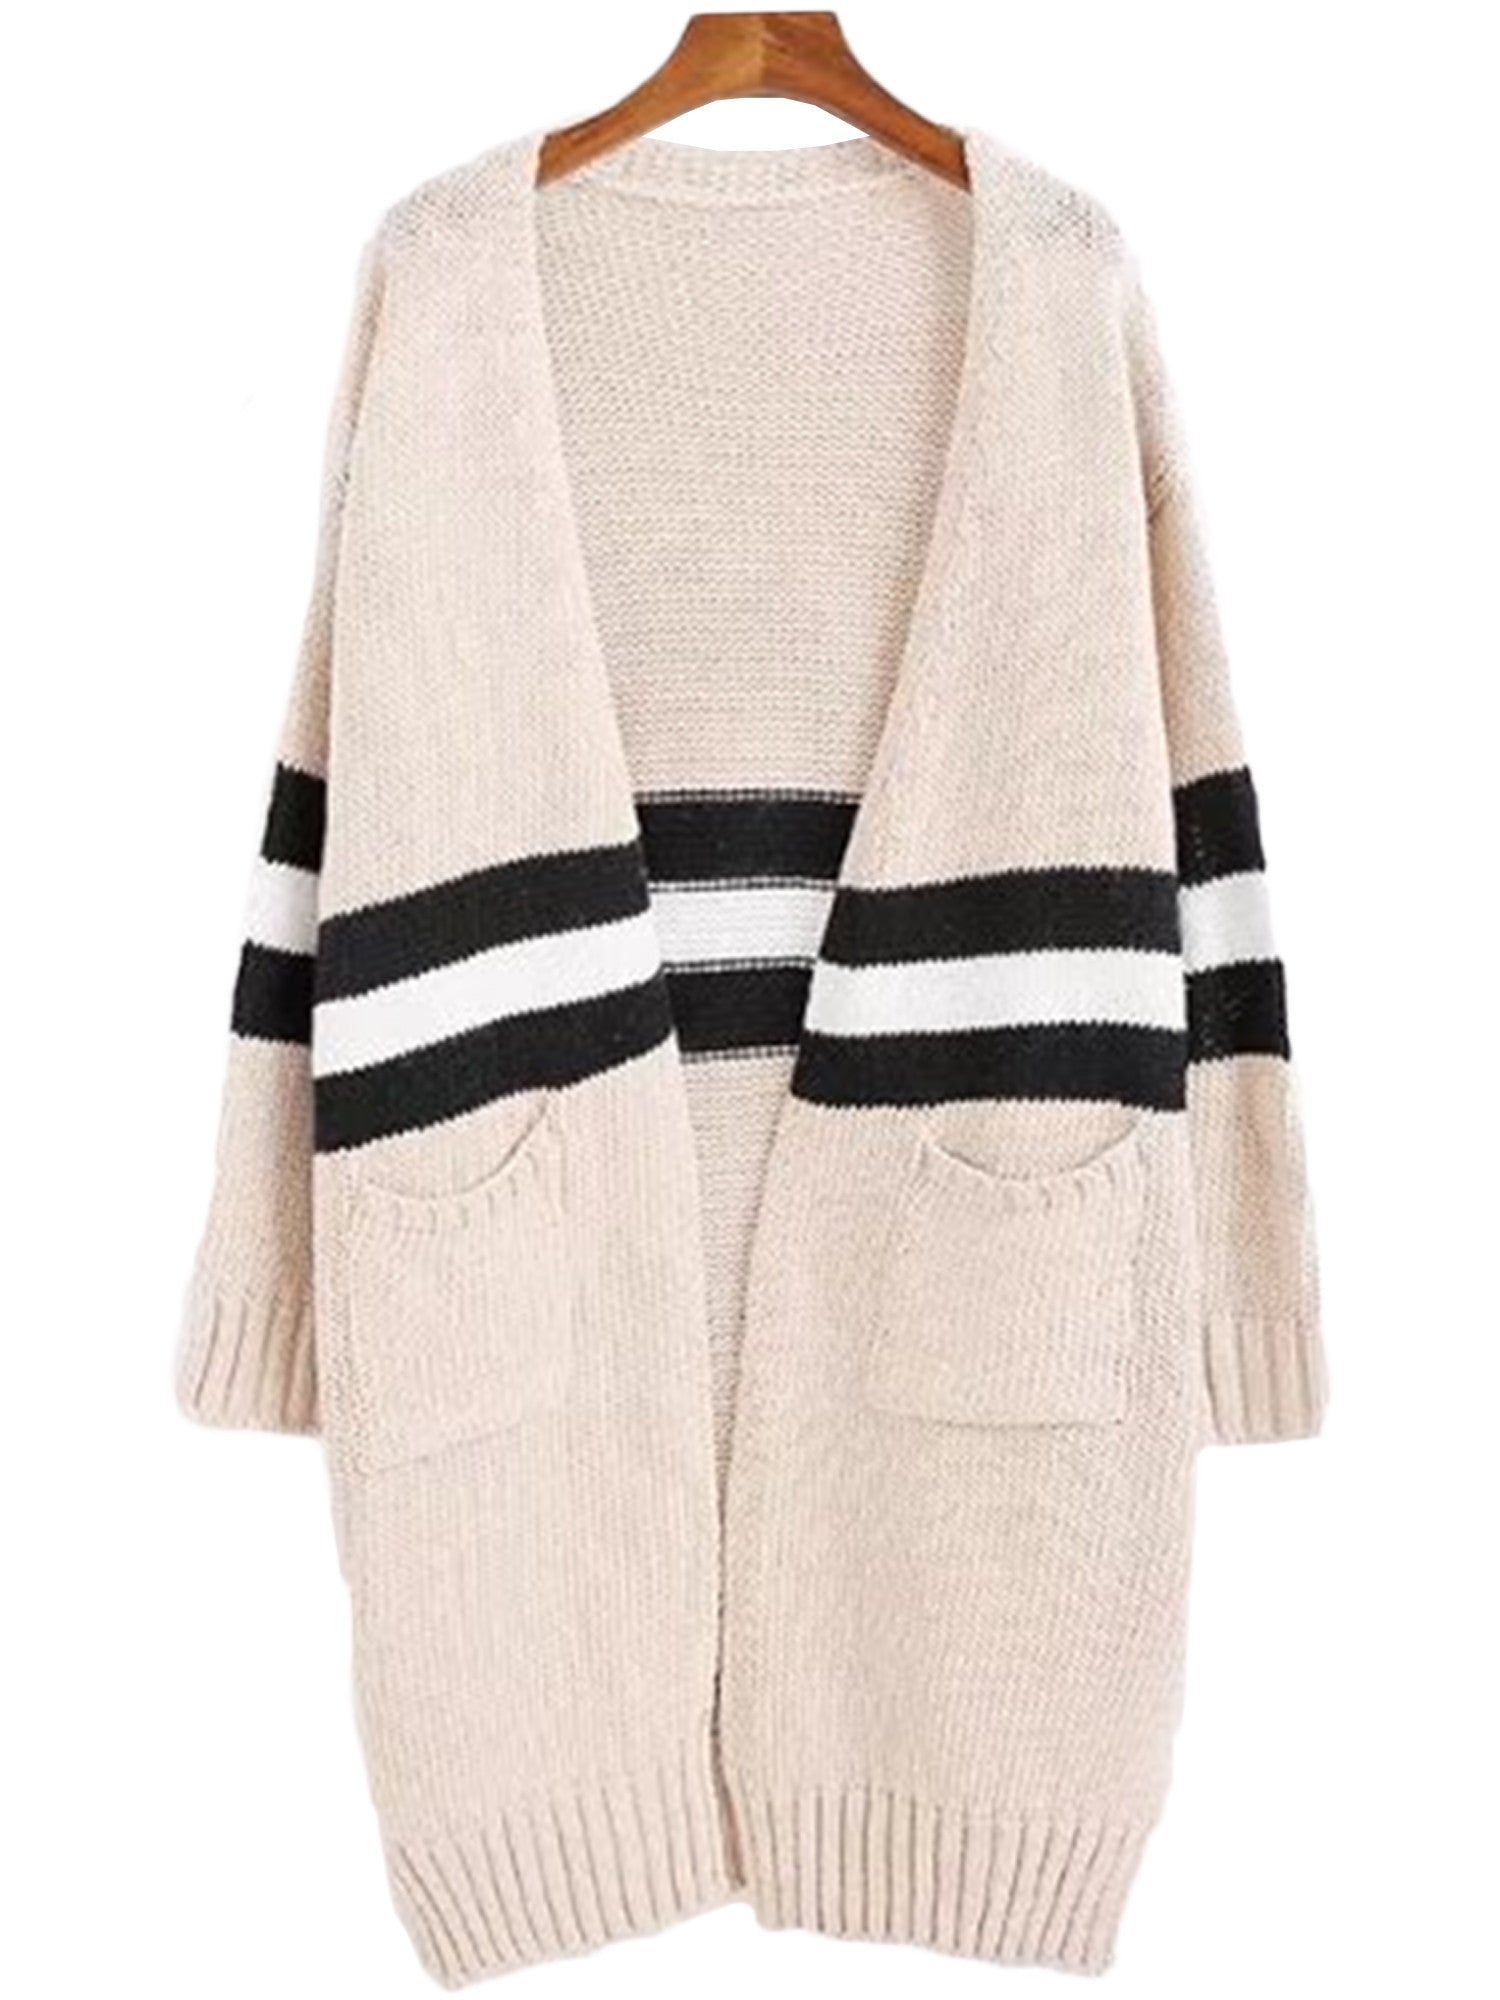 'Estrella' Stripe Colorblock Cardigan Goodnight Macaroon